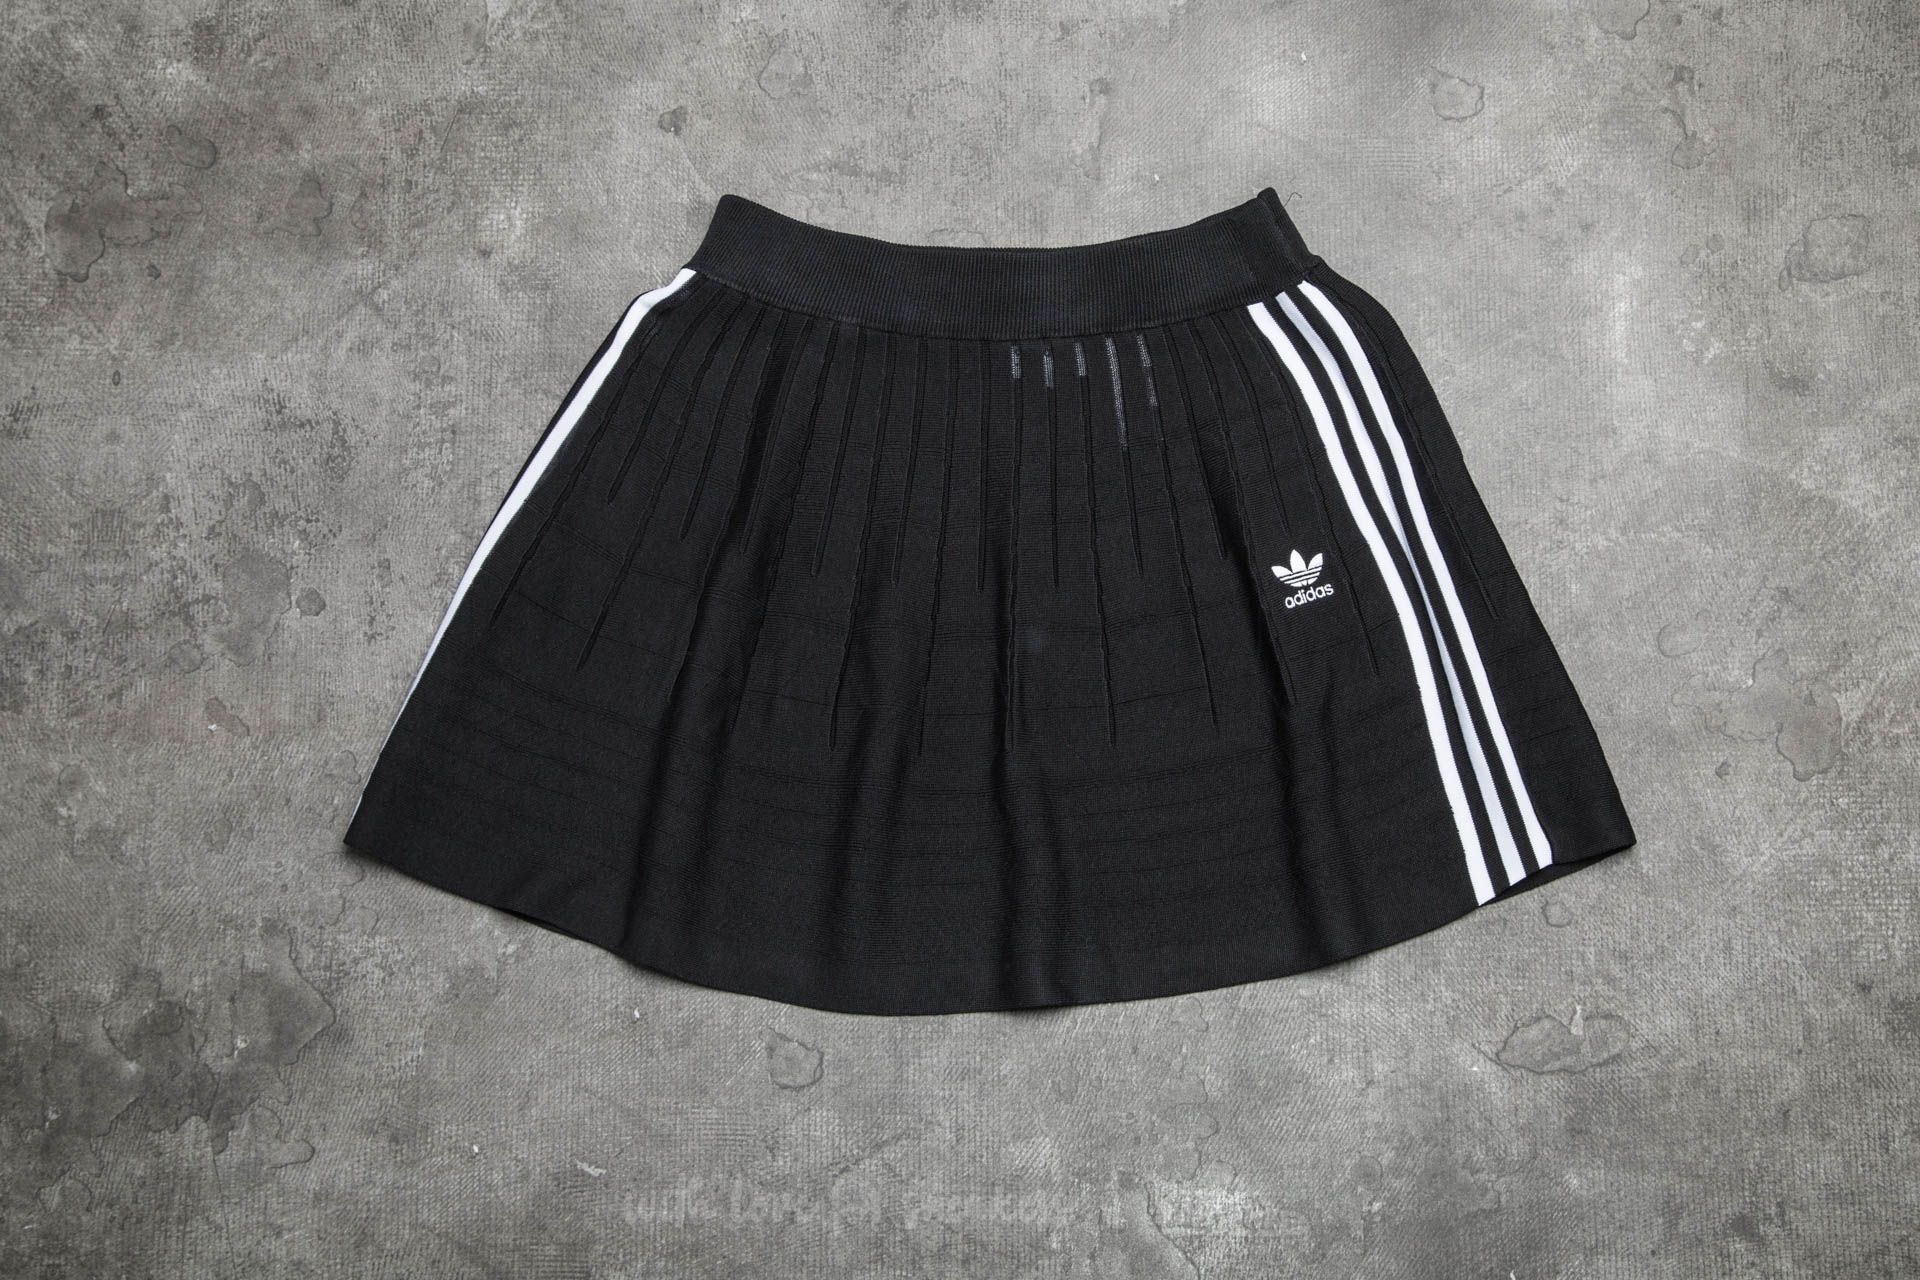 adidas 3 Stripes Skirt Black - 13995